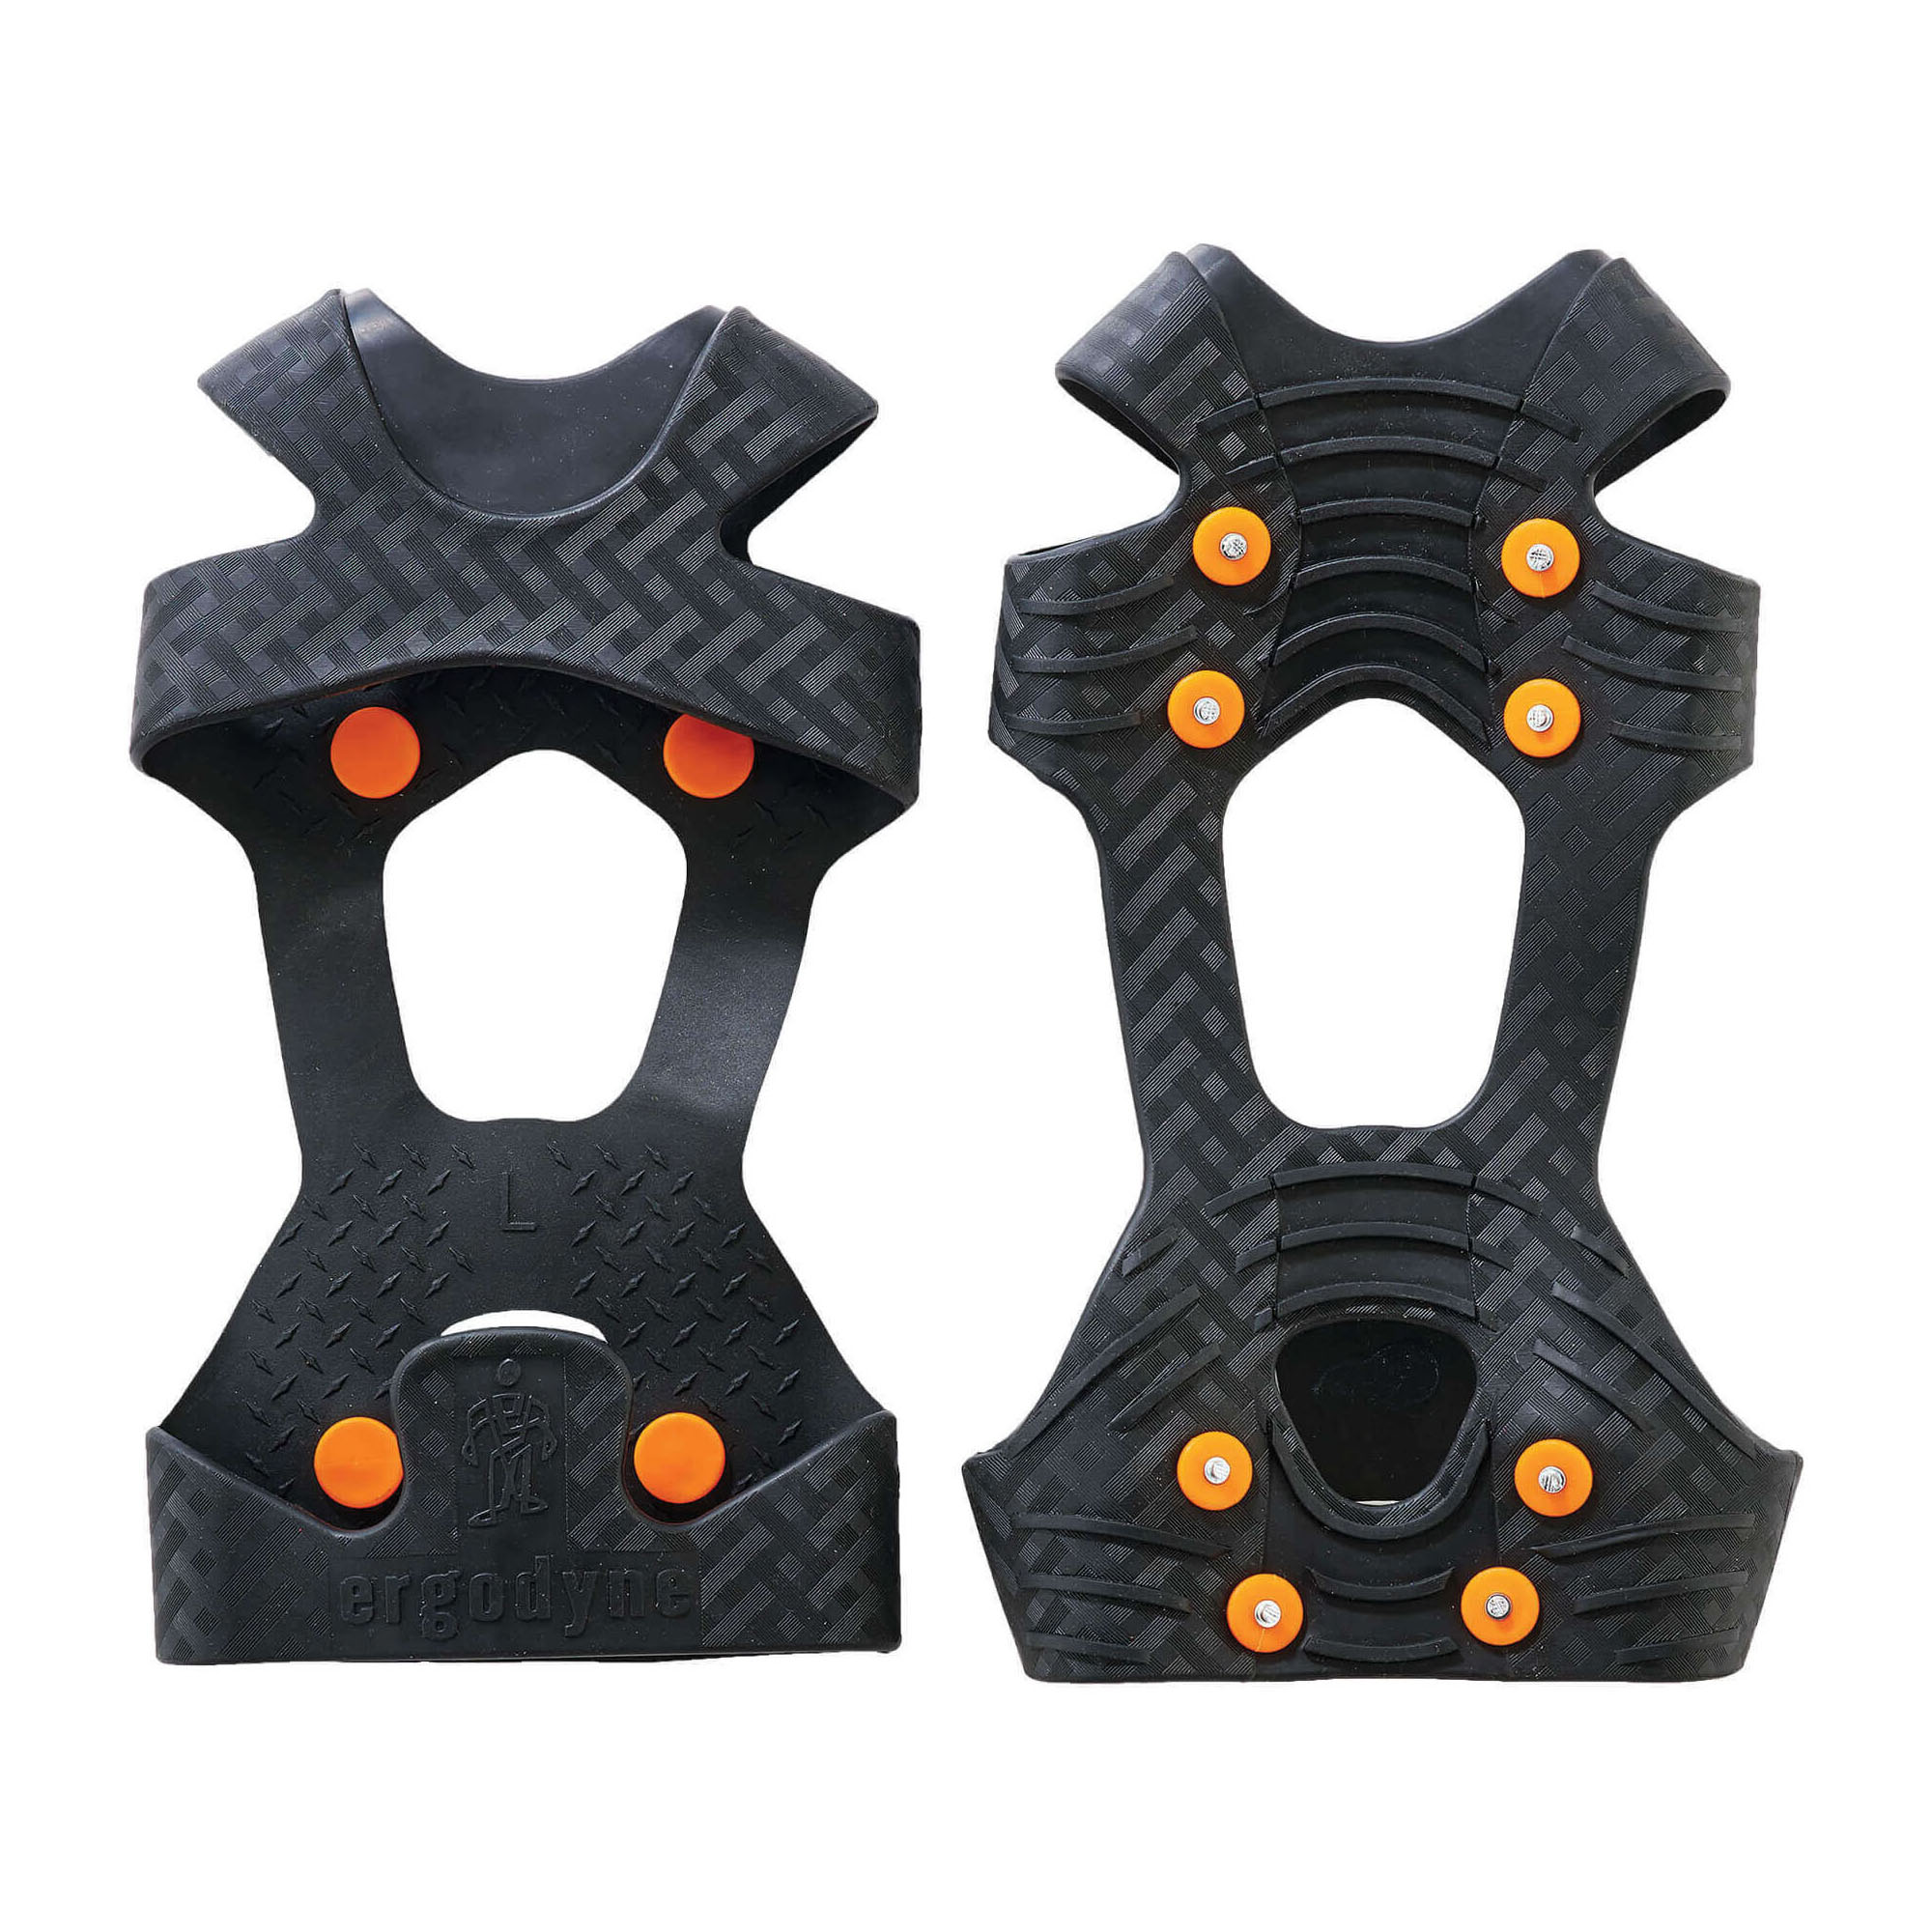 Trex™ Ice Traction 6300 1-Piece Ice Traction Device, Unisex, Carbon Steel/Stretchable Rubber, Black, For Use With Shoe and Boot